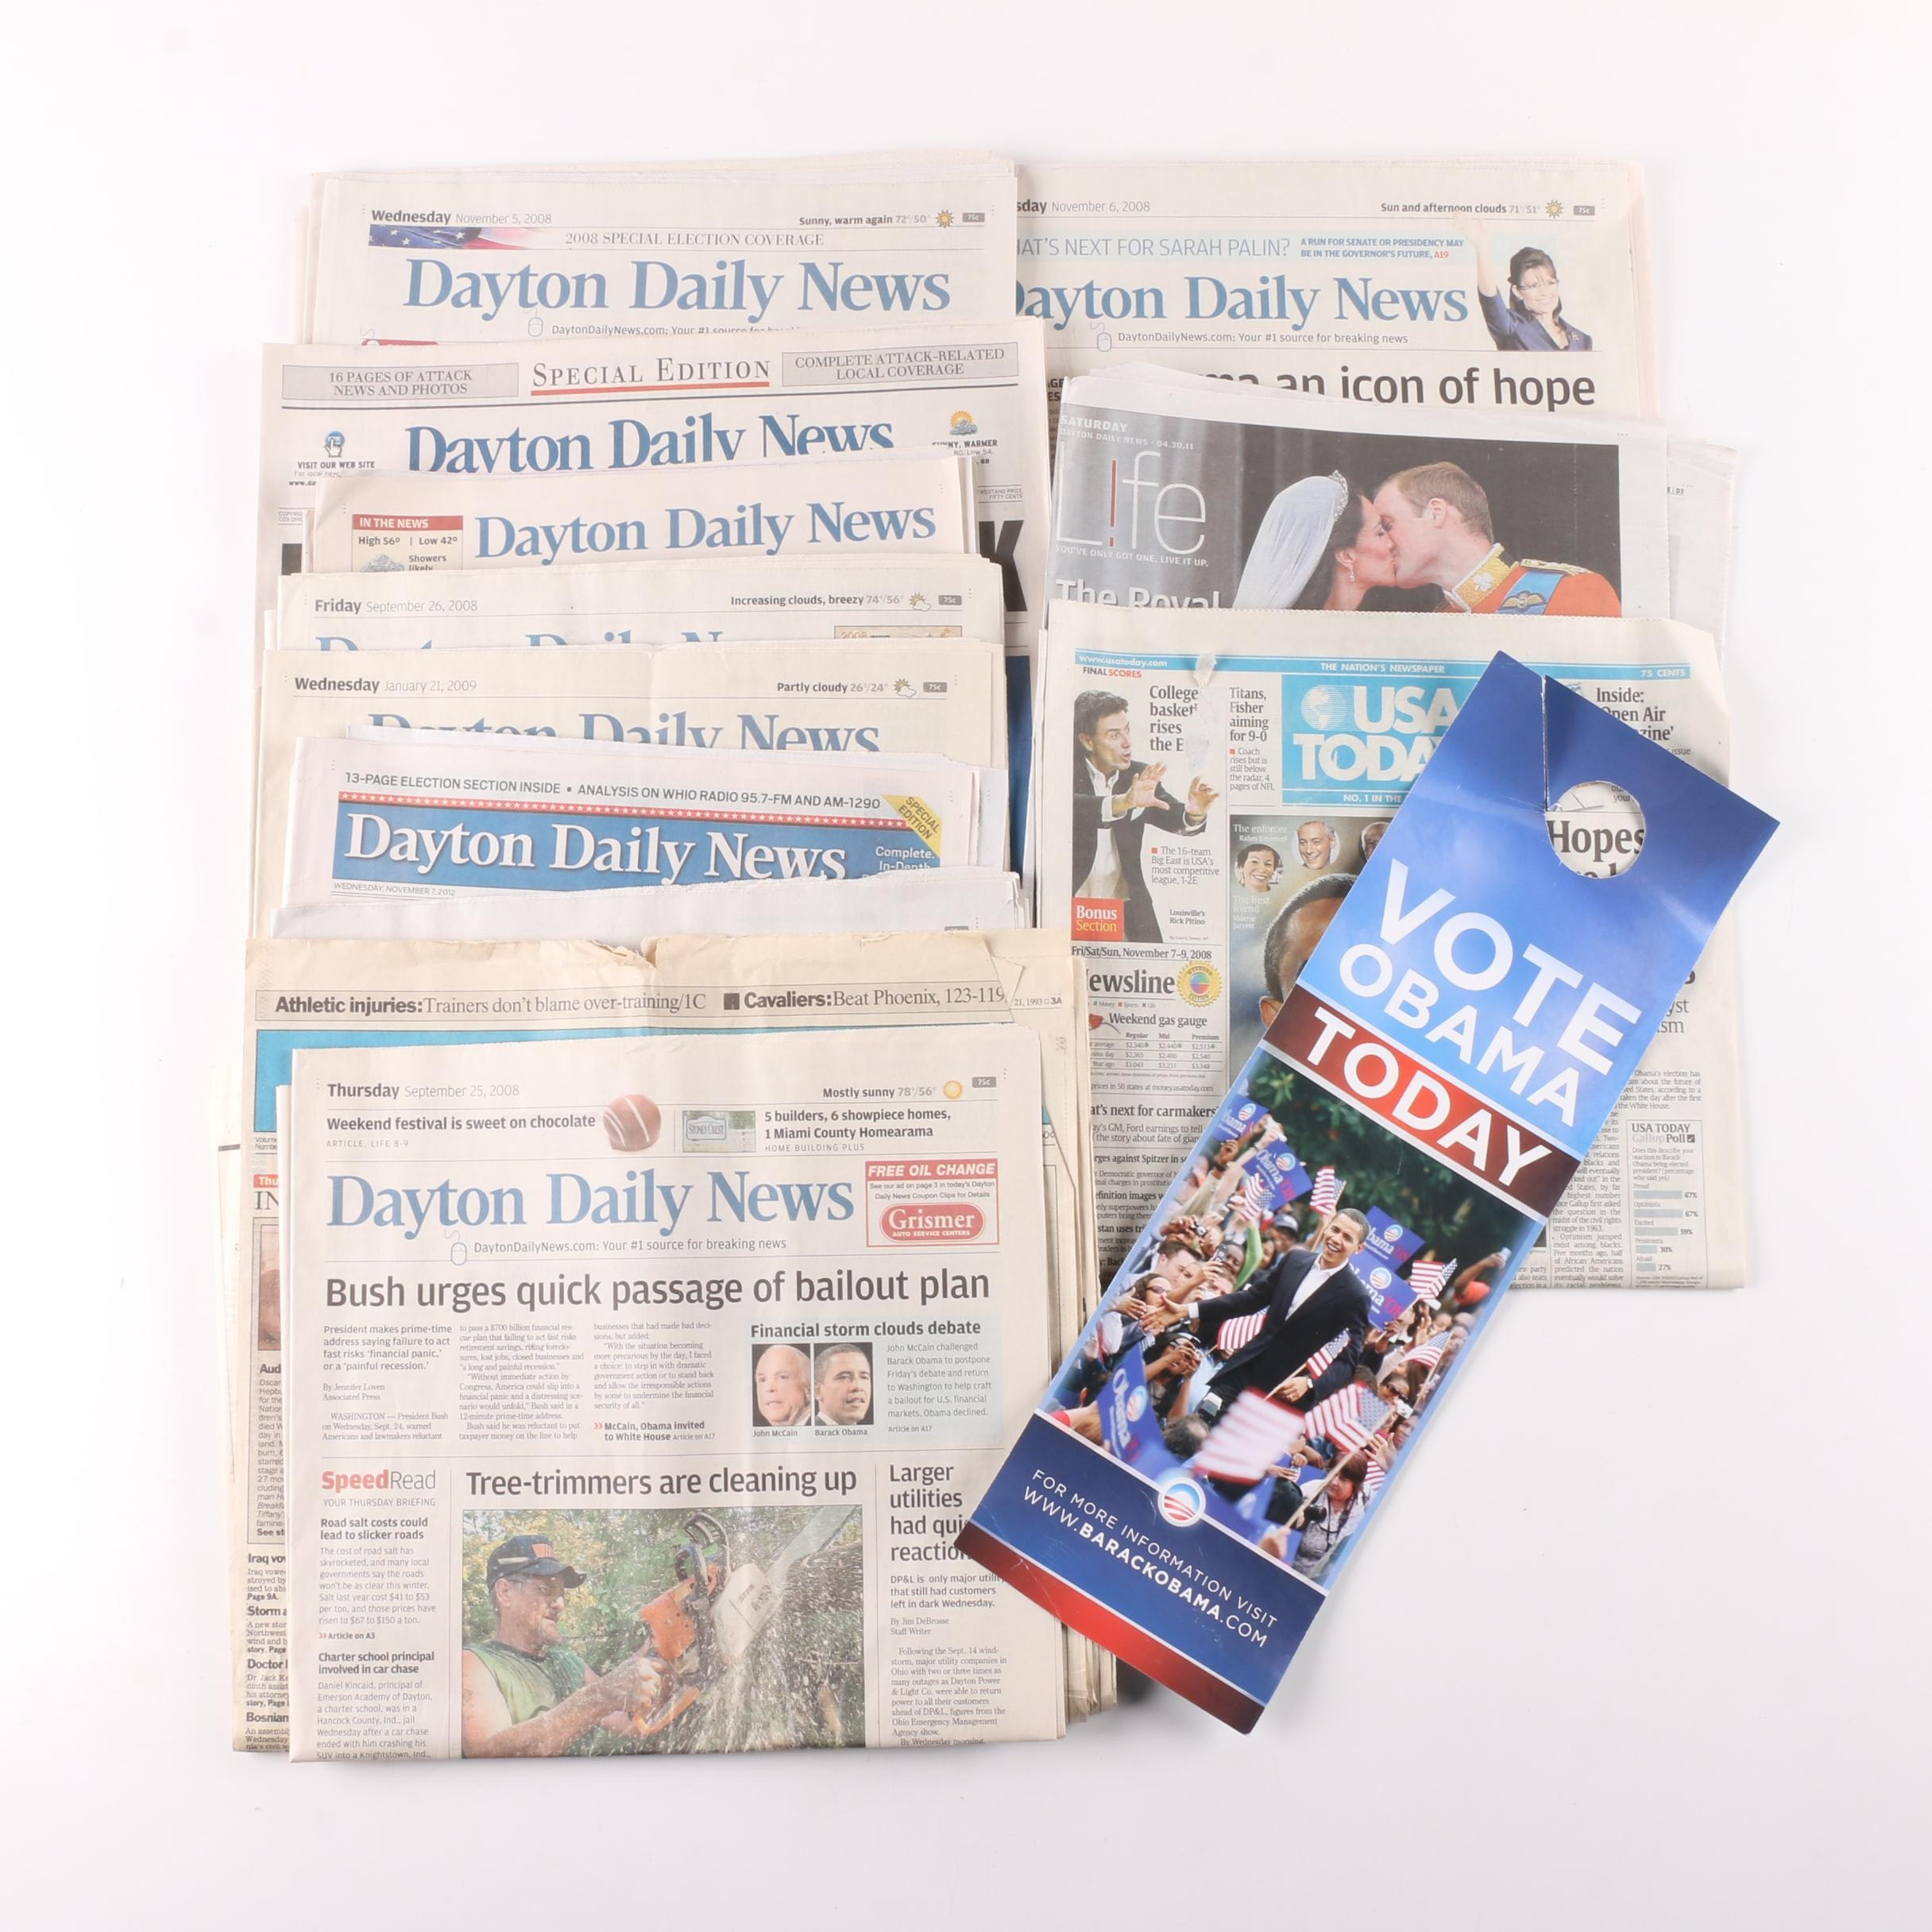 """""""Dayton Daily News"""" Newspapers on Obama's Presidential Campaign and More"""